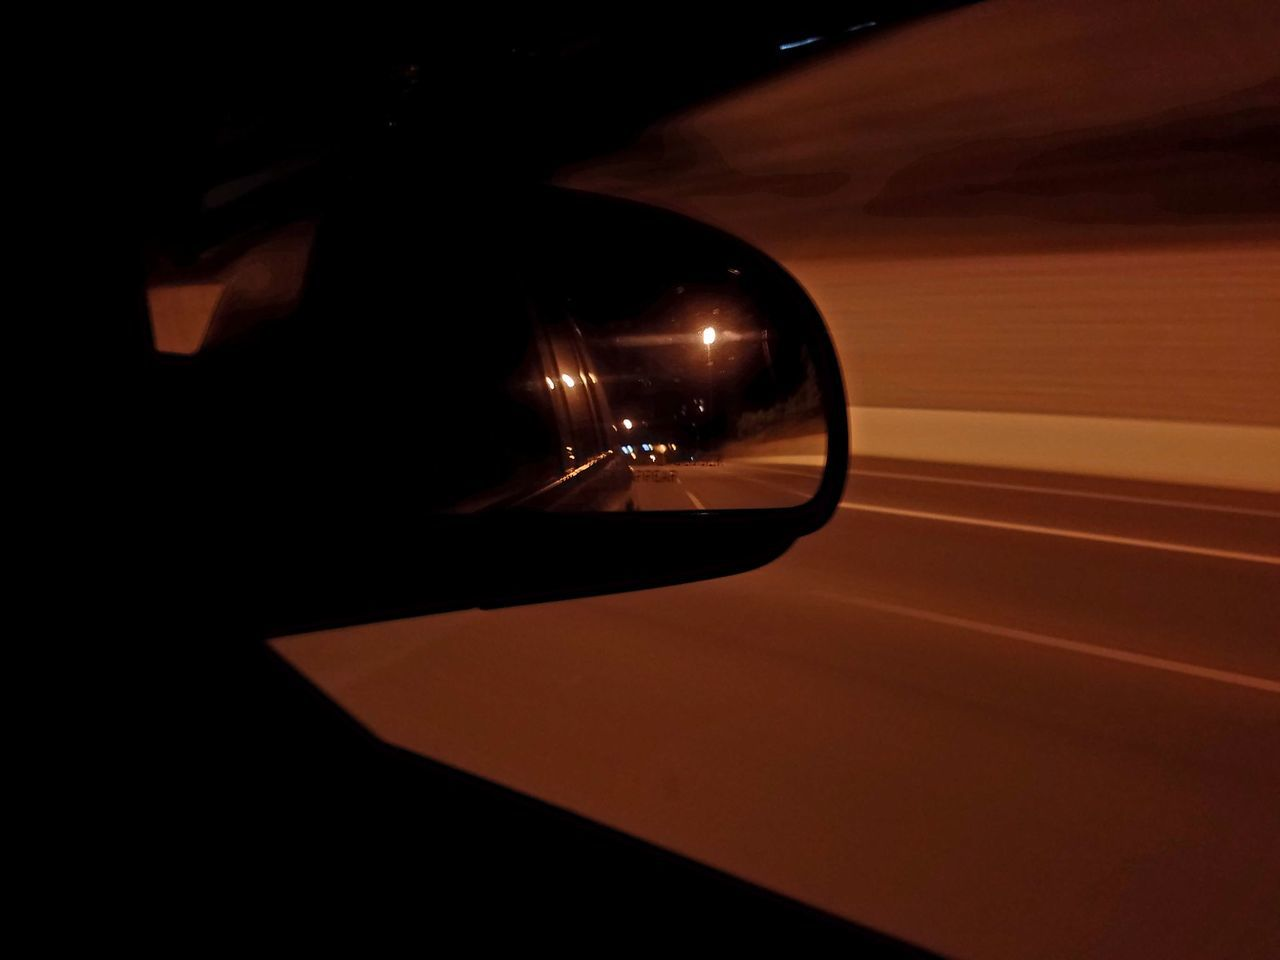 transportation, car, speed, illuminated, mode of transport, side-view mirror, land vehicle, motion, night, reflection, no people, indoors, close-up